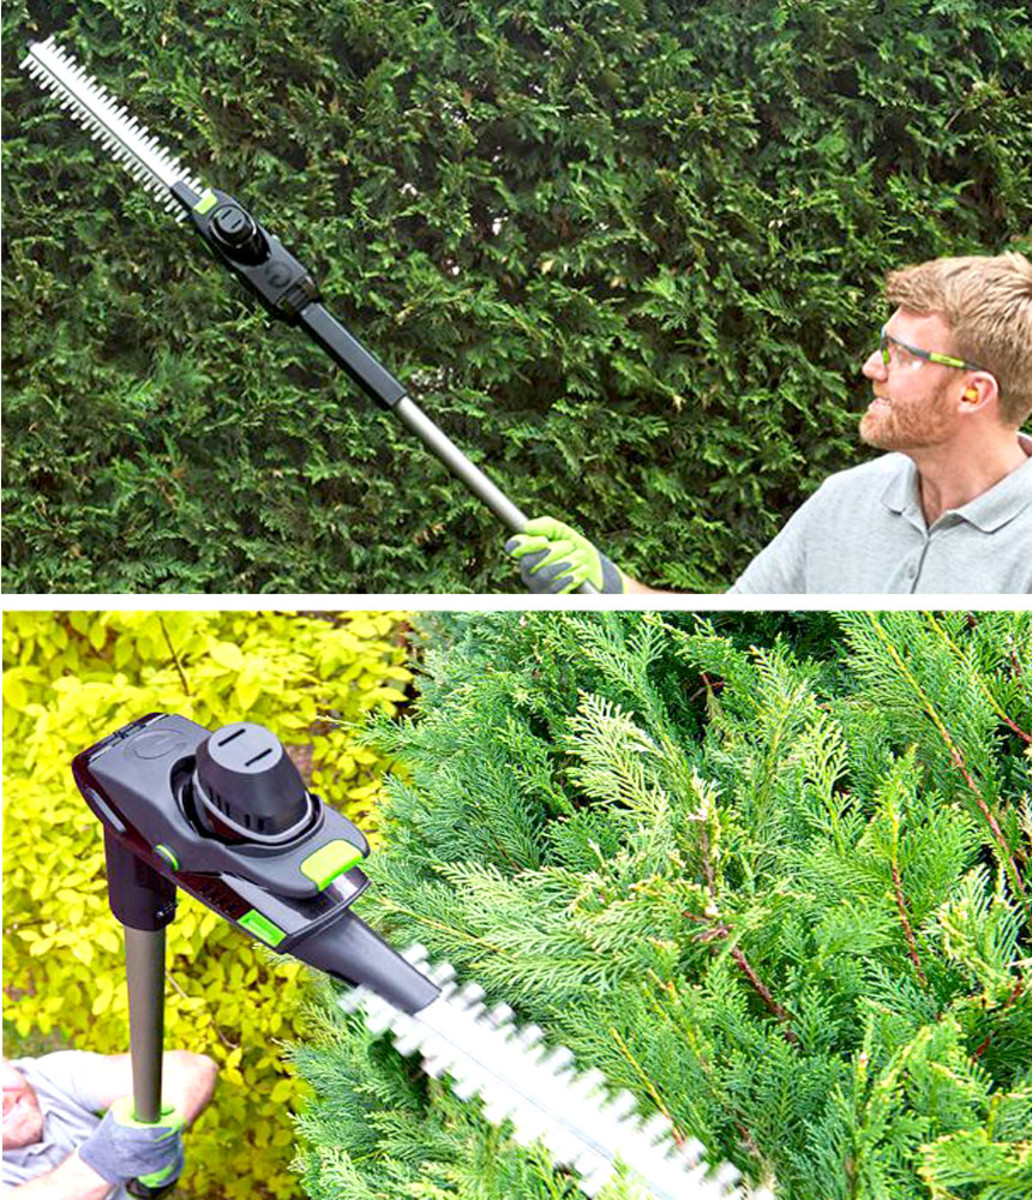 Pole hedge trimmers help keep your feet firmly on the ground.